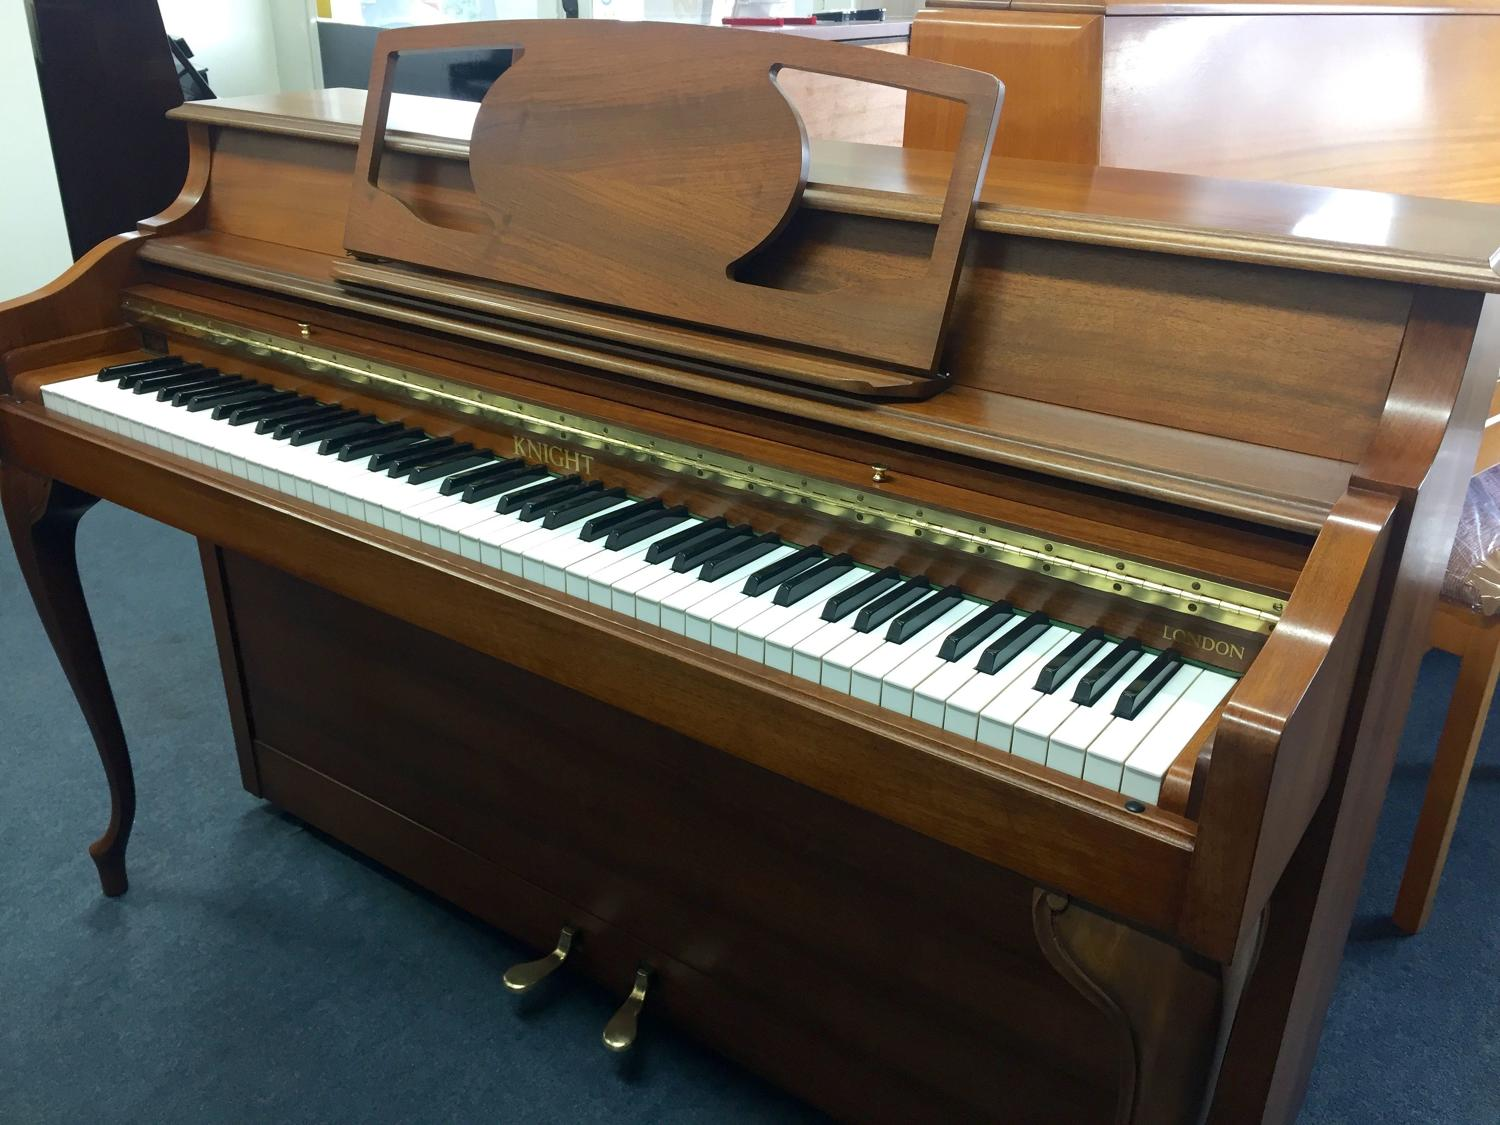 KNIGHT K15 upright piano